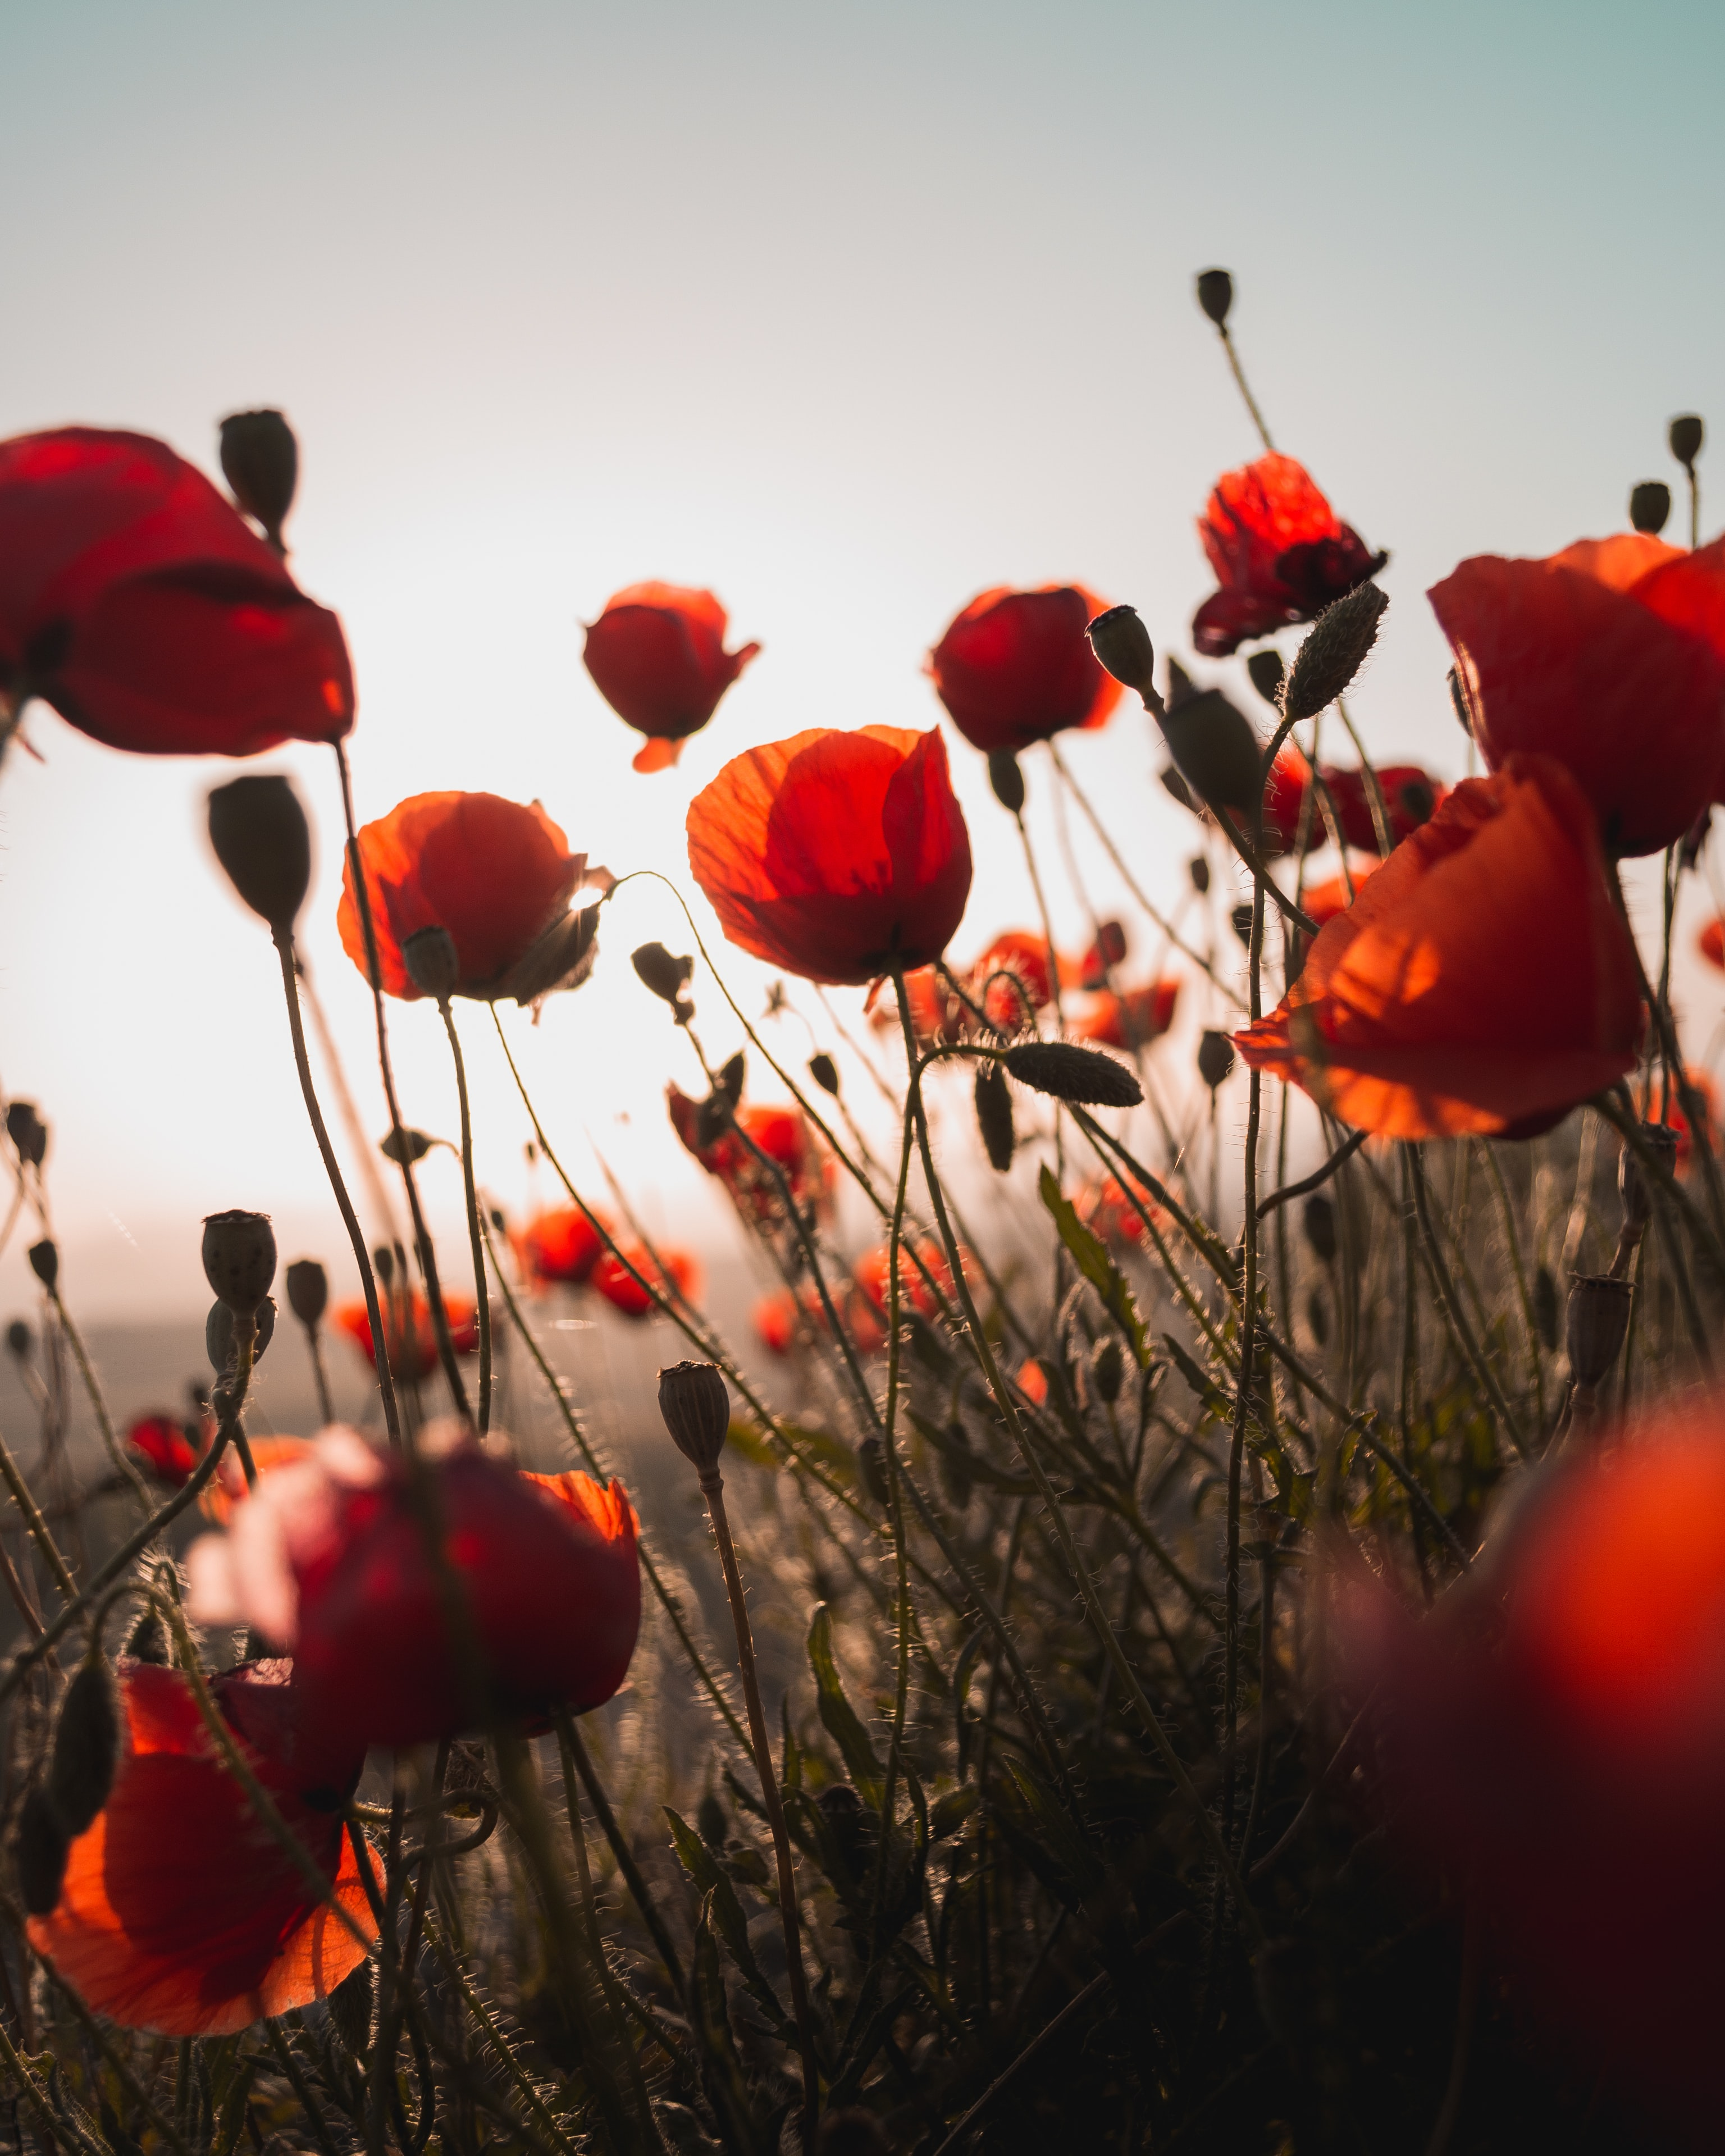 A Poppy in the Field stories